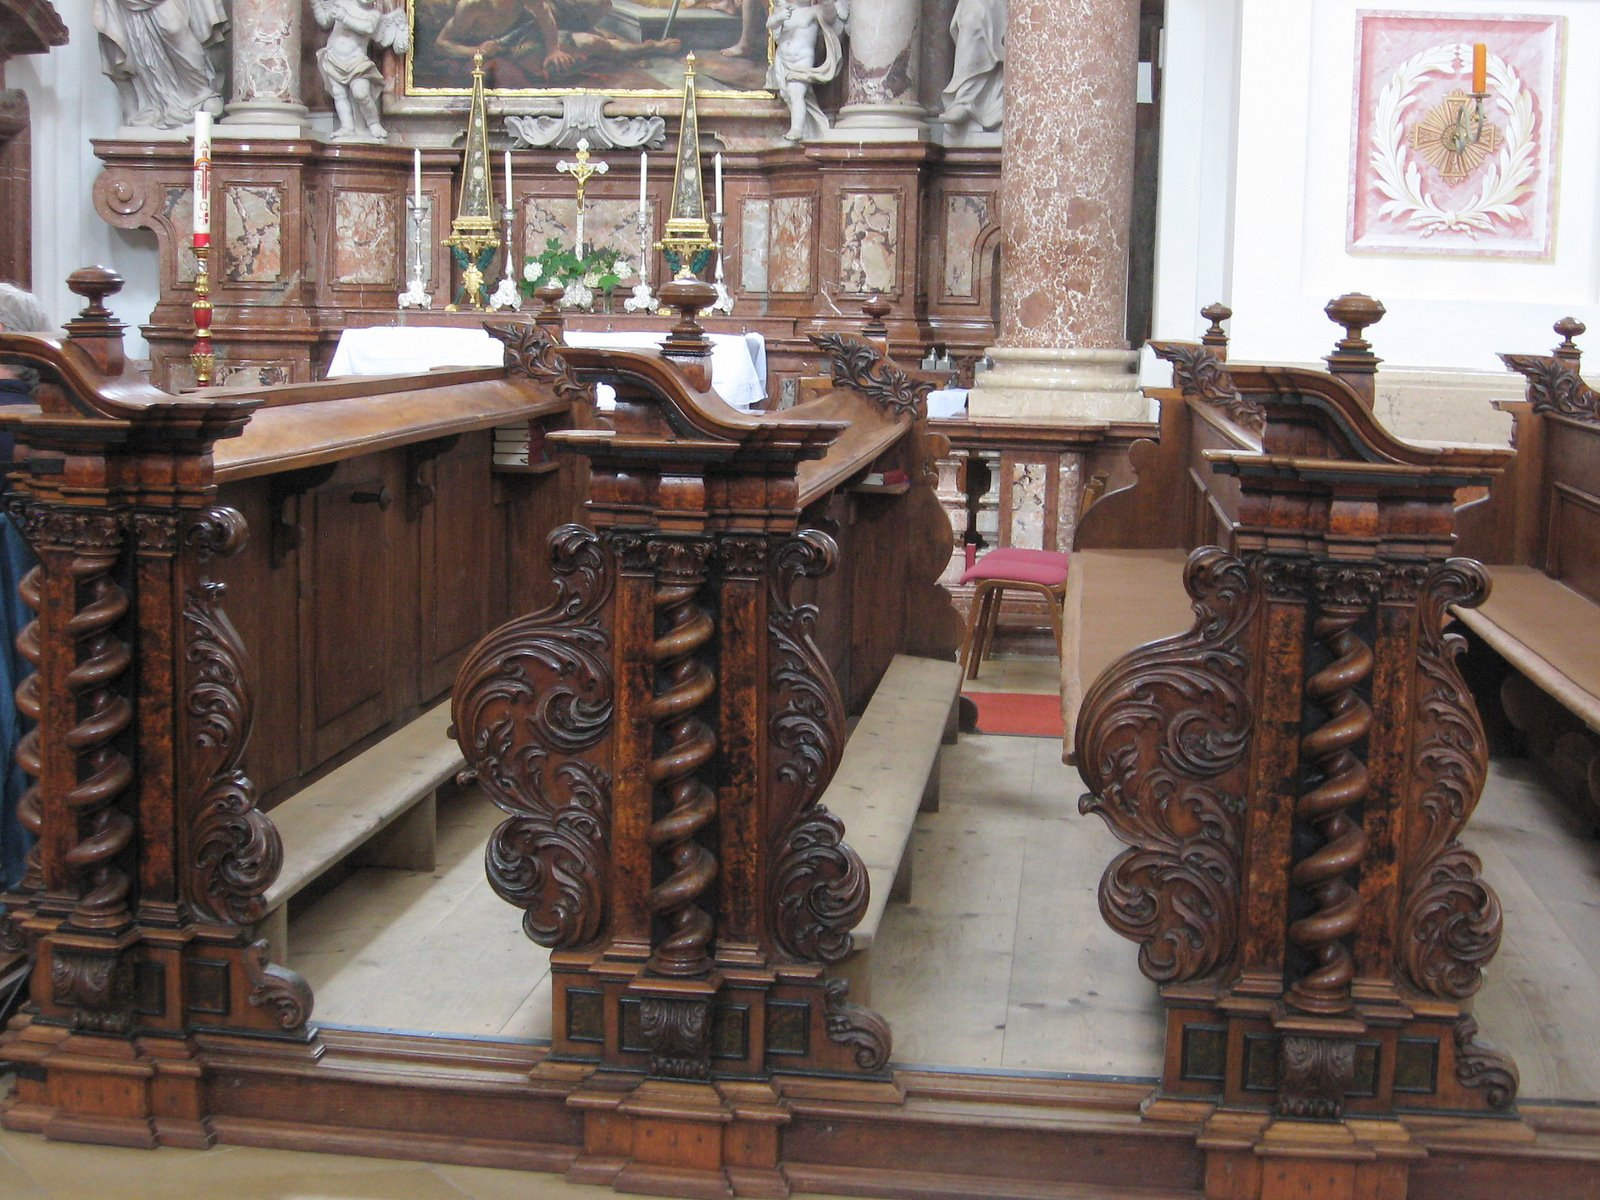 Saint Florian Abbey, Austria, The pews